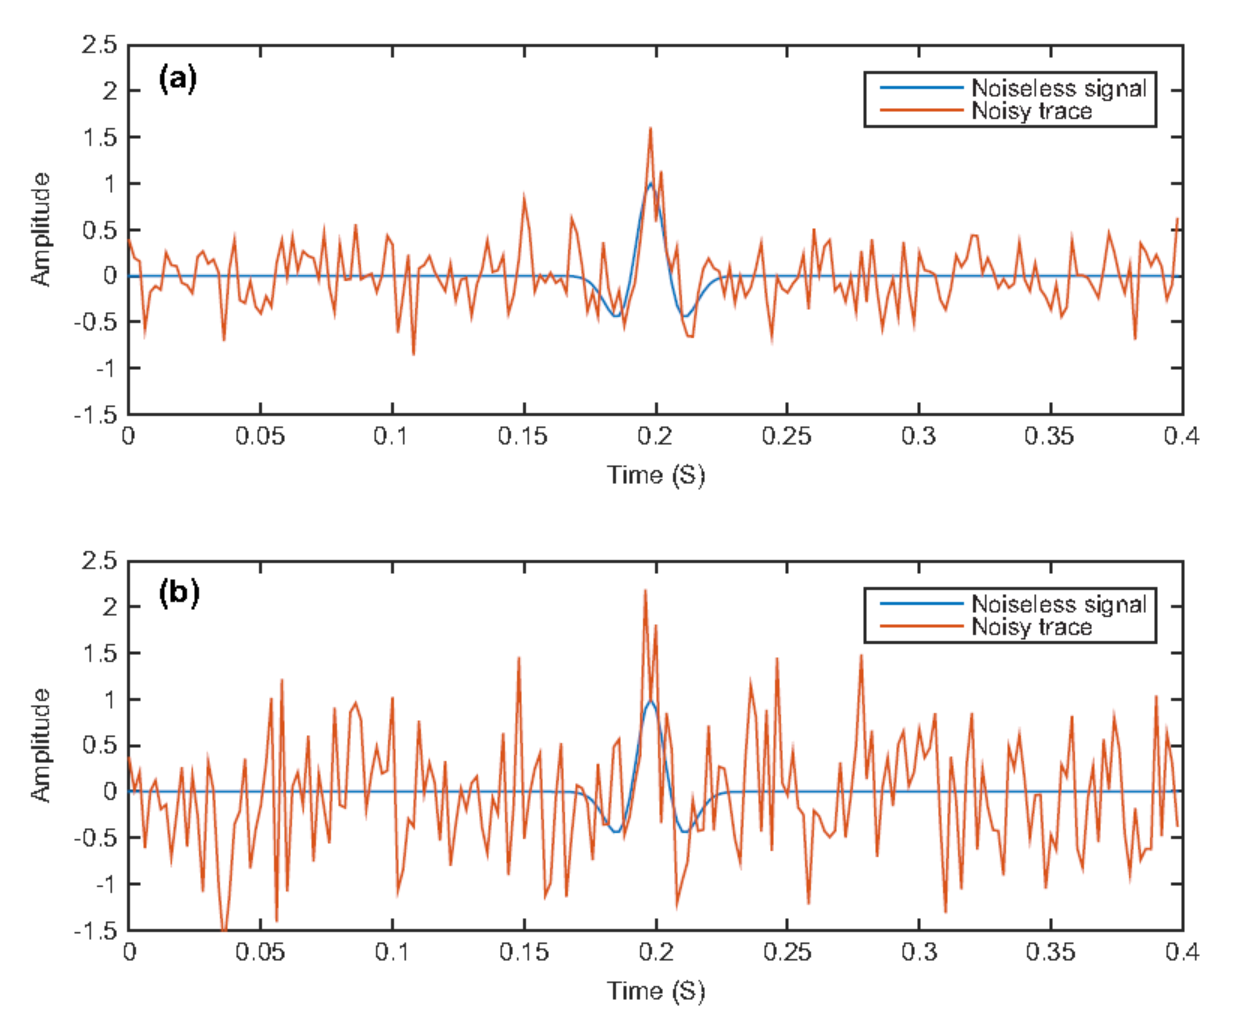 Fig  3: Noiseless and noisy traces: (a) SNR = -6.03 dB; (b) SNR = -12.01dB. The Corresponding PSNR values are 10.46 and 4.44 dB, respectively